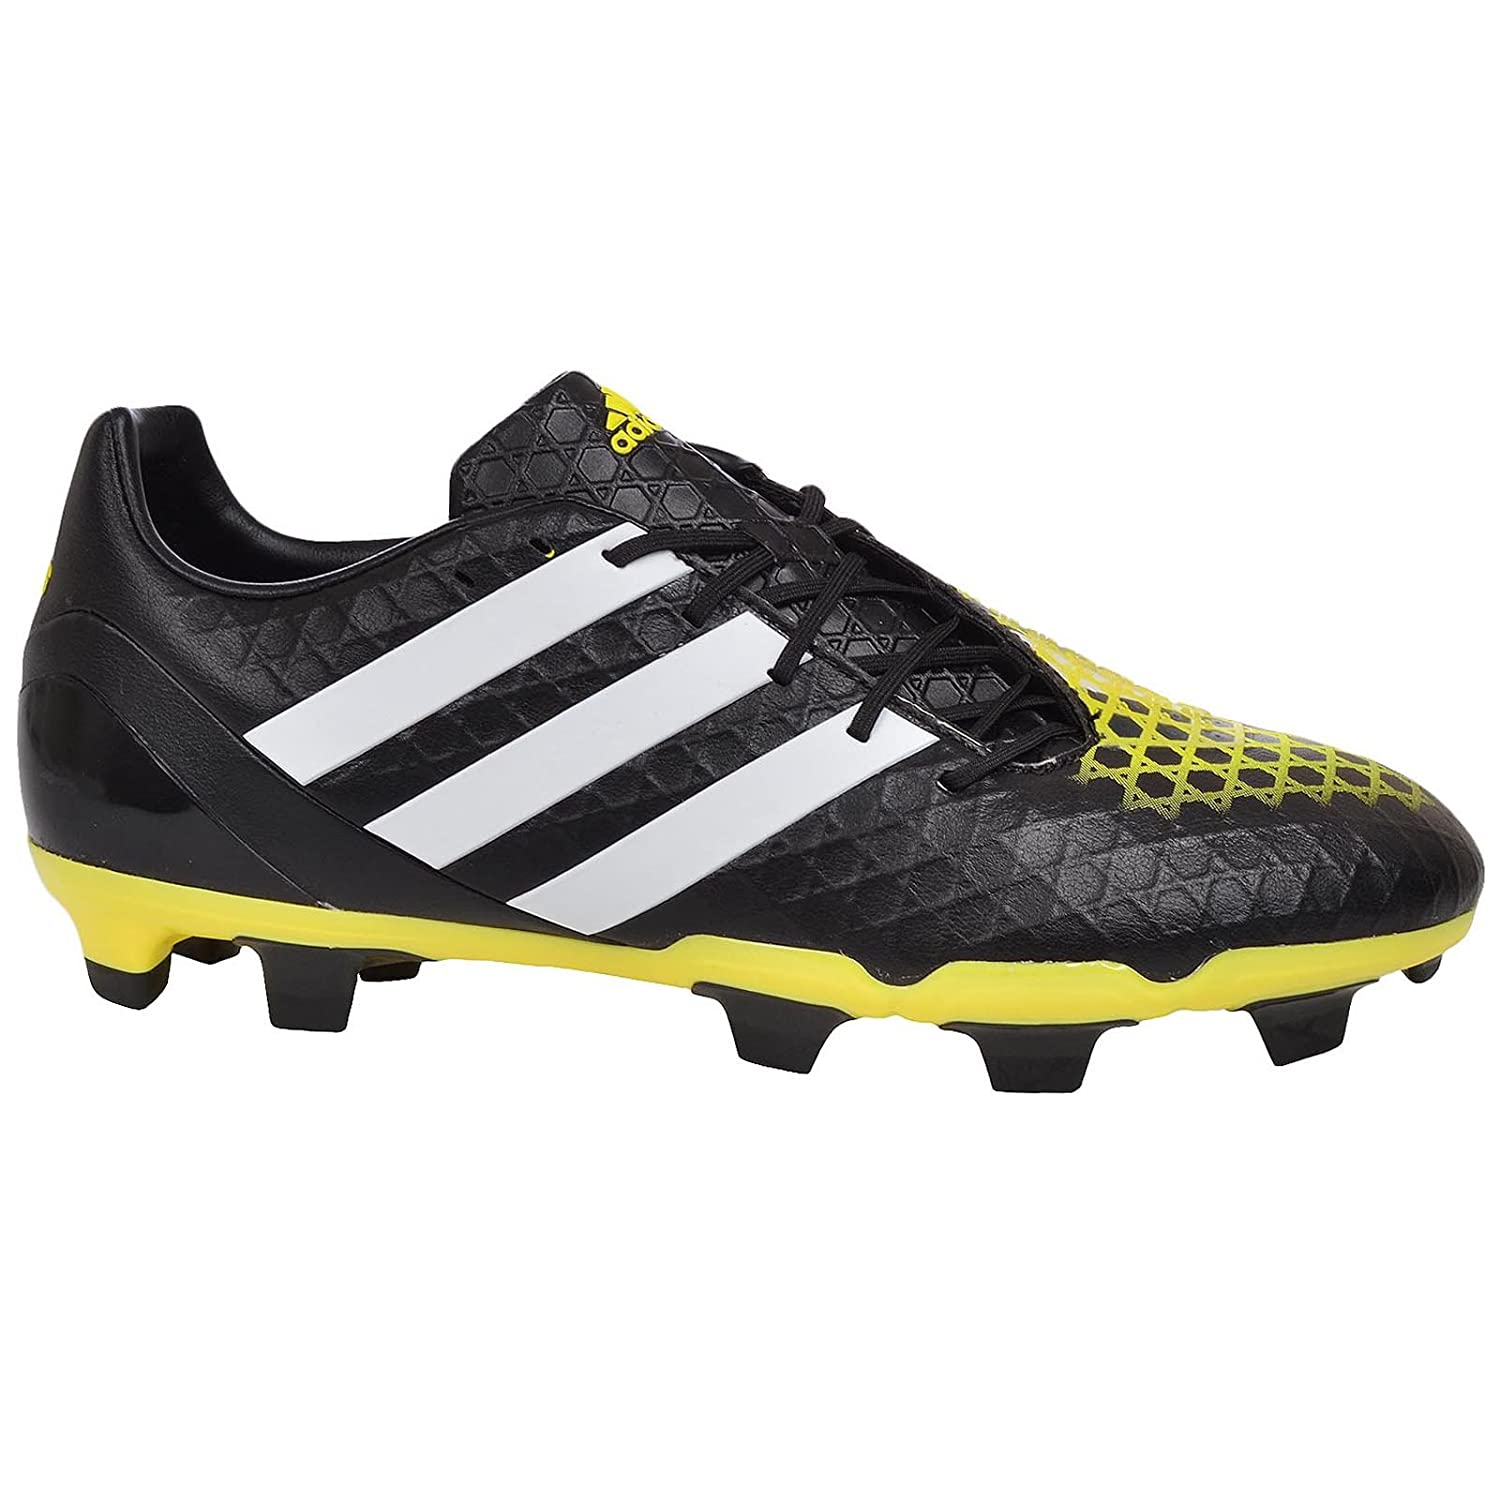 7e1f6d1dc5f Predator Incurza FG Football Boots - Adult - Core Black White Bright  Yellow  Amazon.co.uk  Shoes   Bags